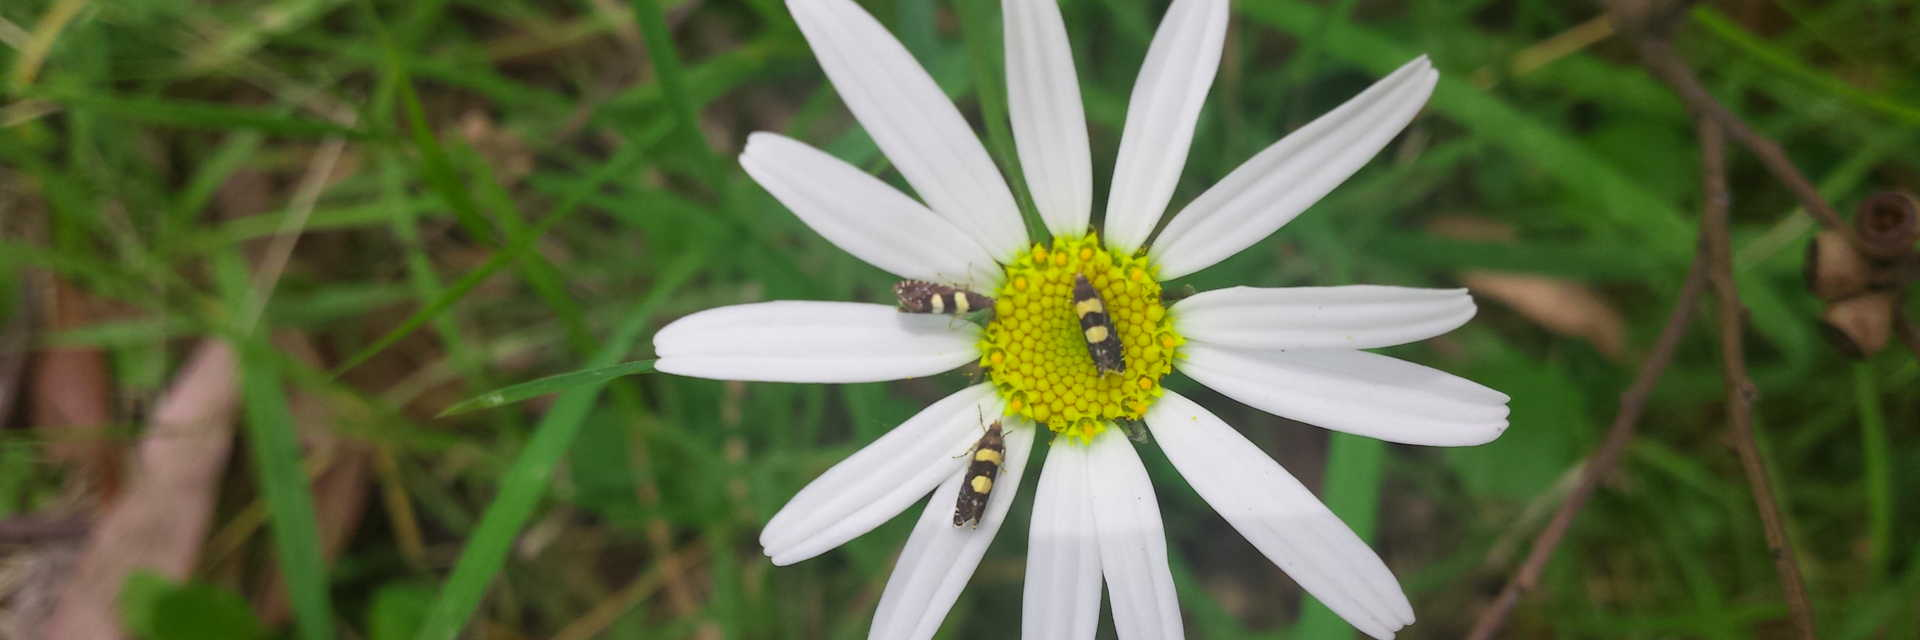 beetles inside white flower